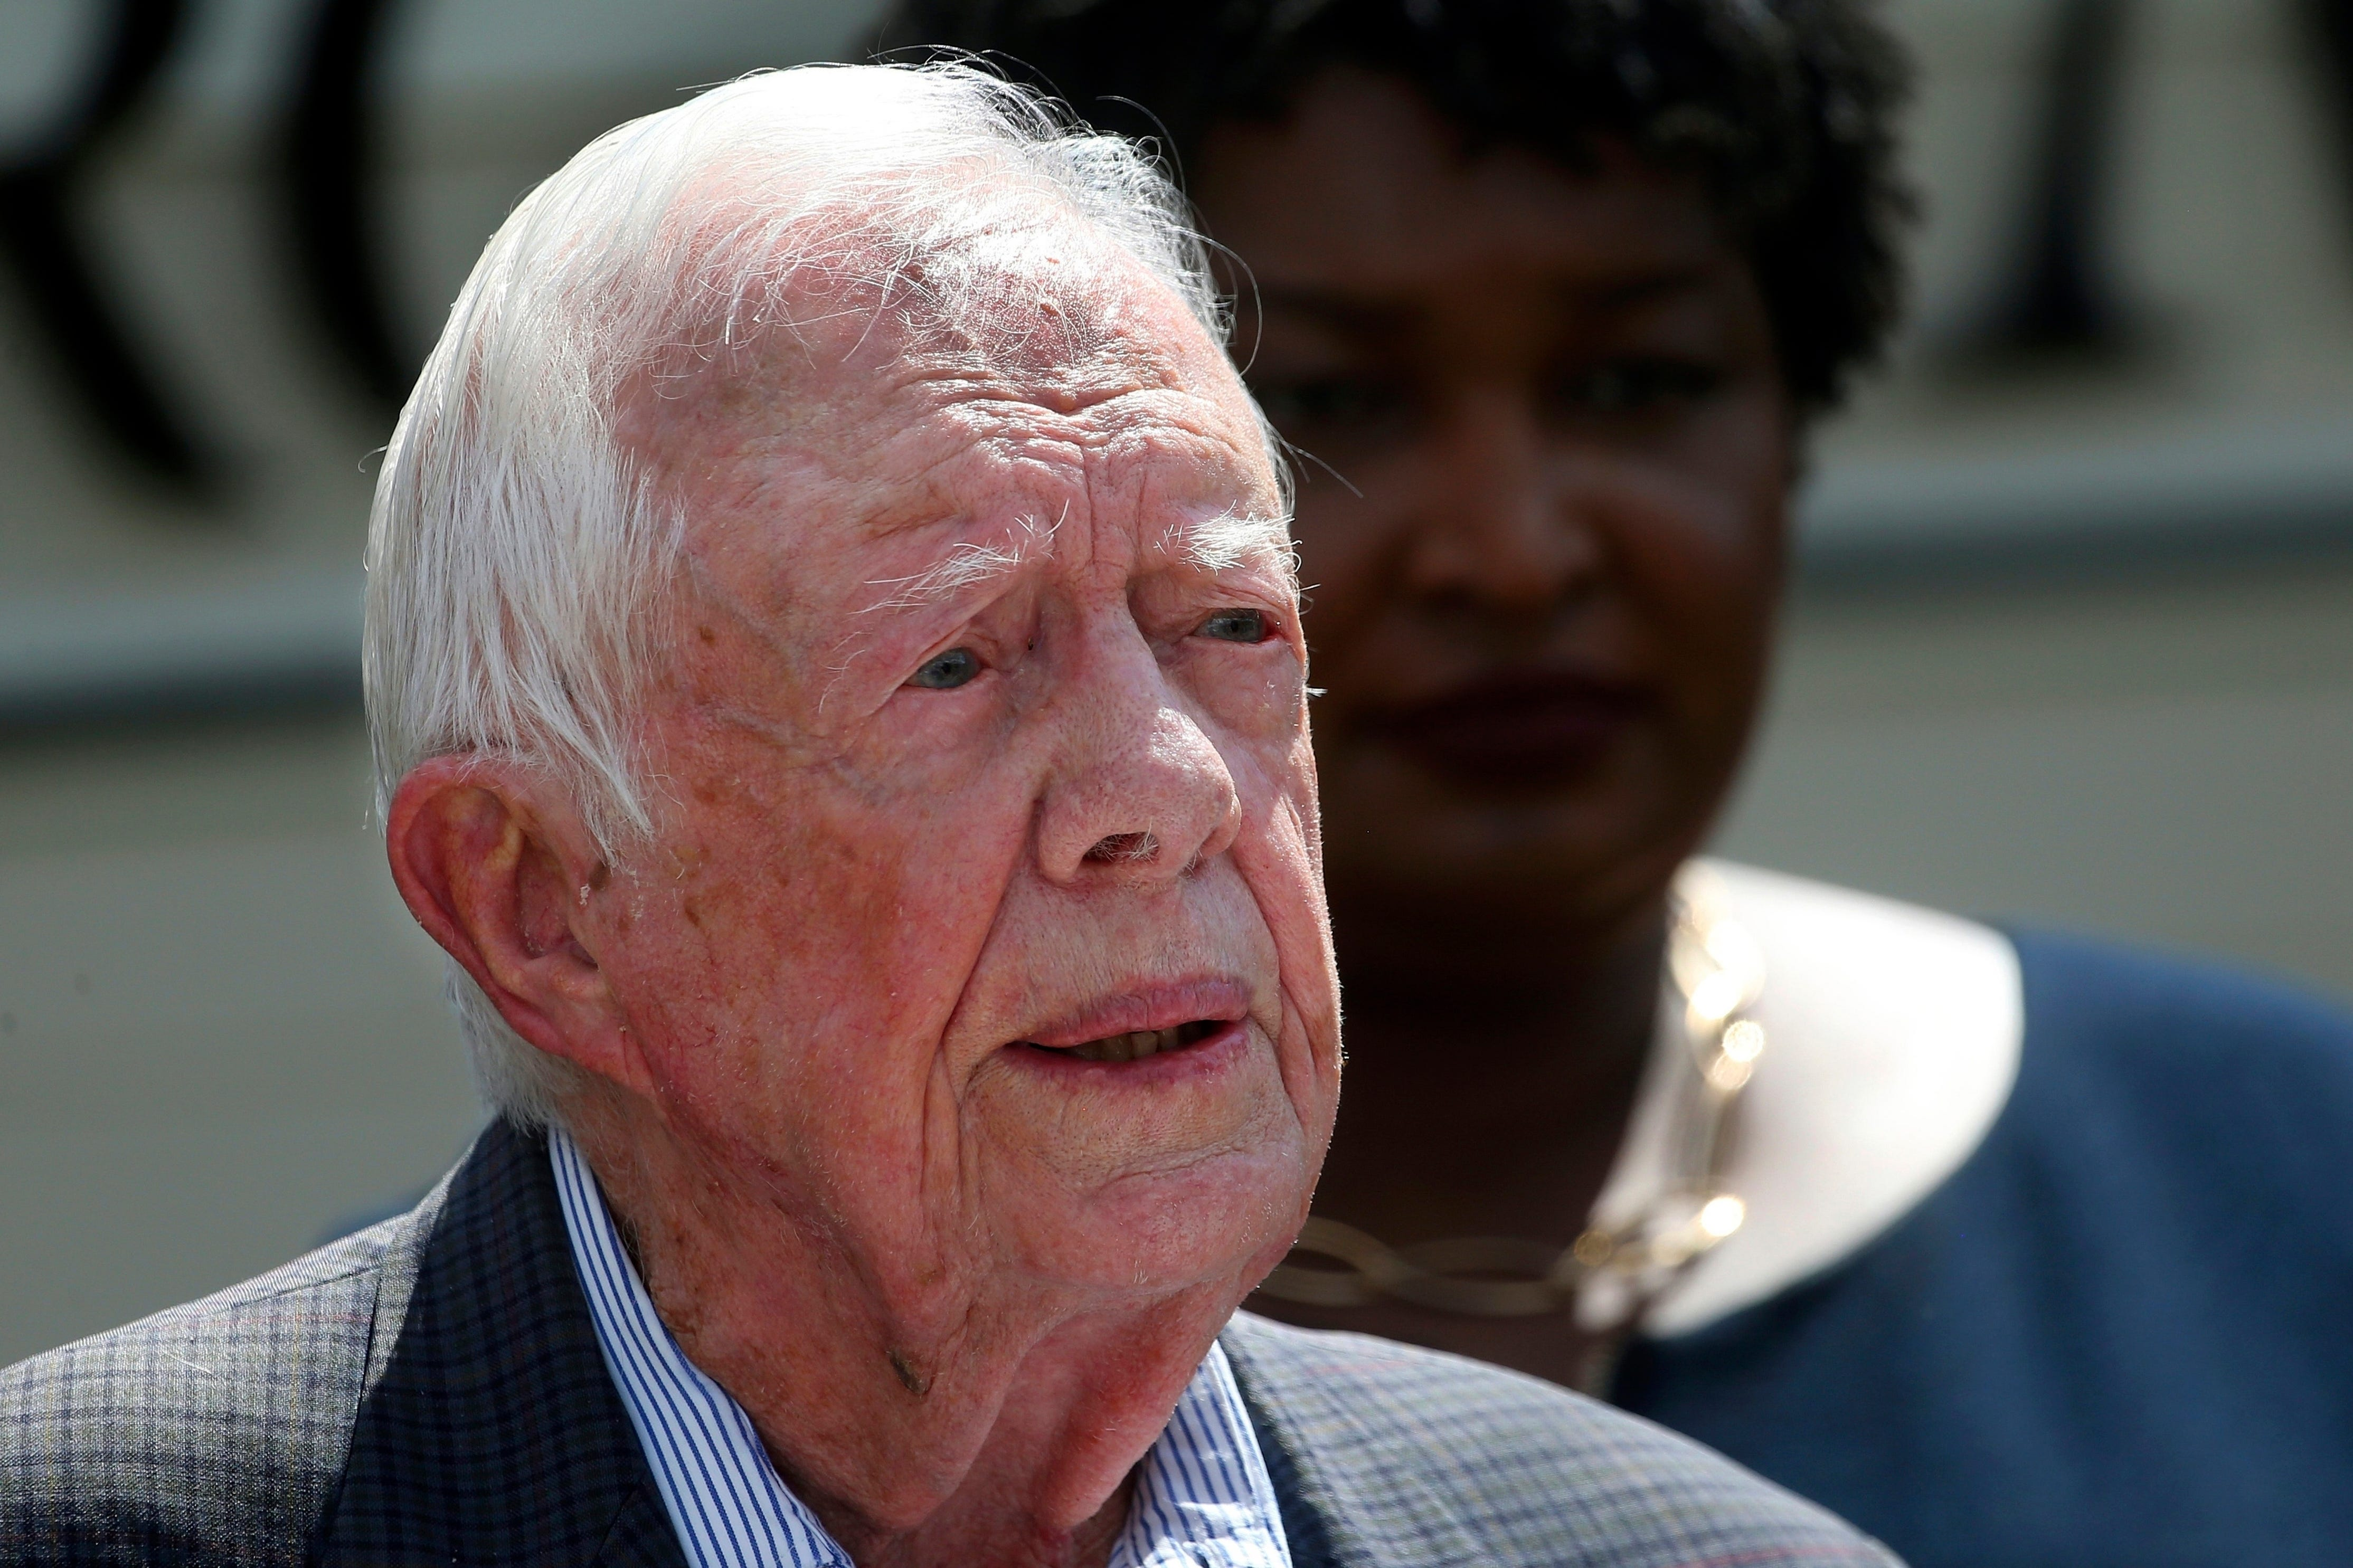 Jimmy Carter cancels plans to teach Sunday school days after surgery for broken hip